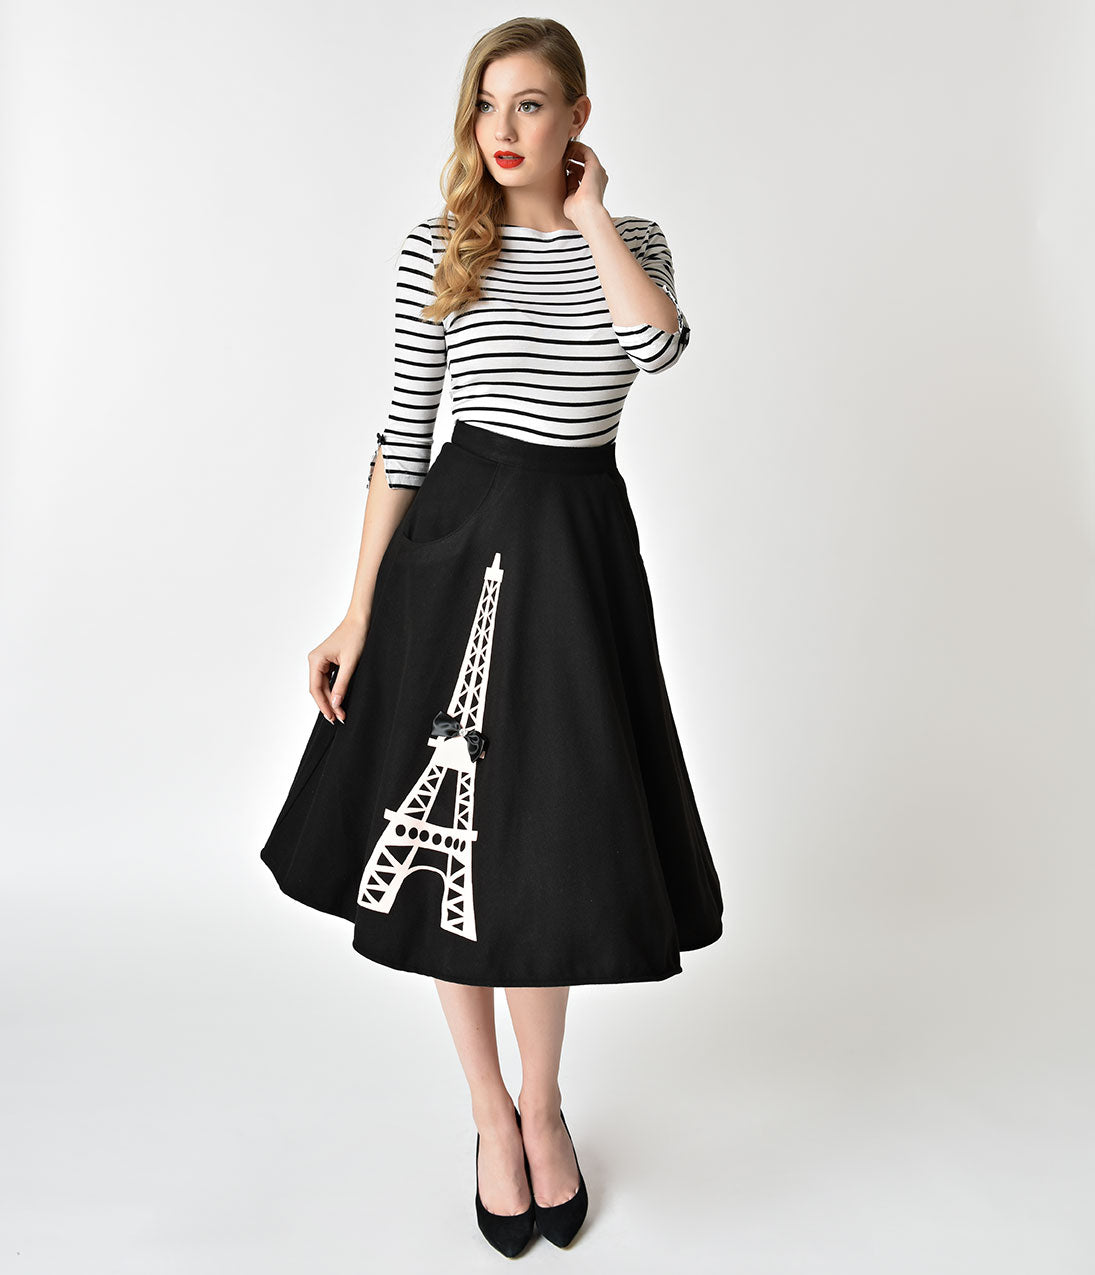 Retro Skirts: Vintage, Pencil, Indie, & Plus Sizes